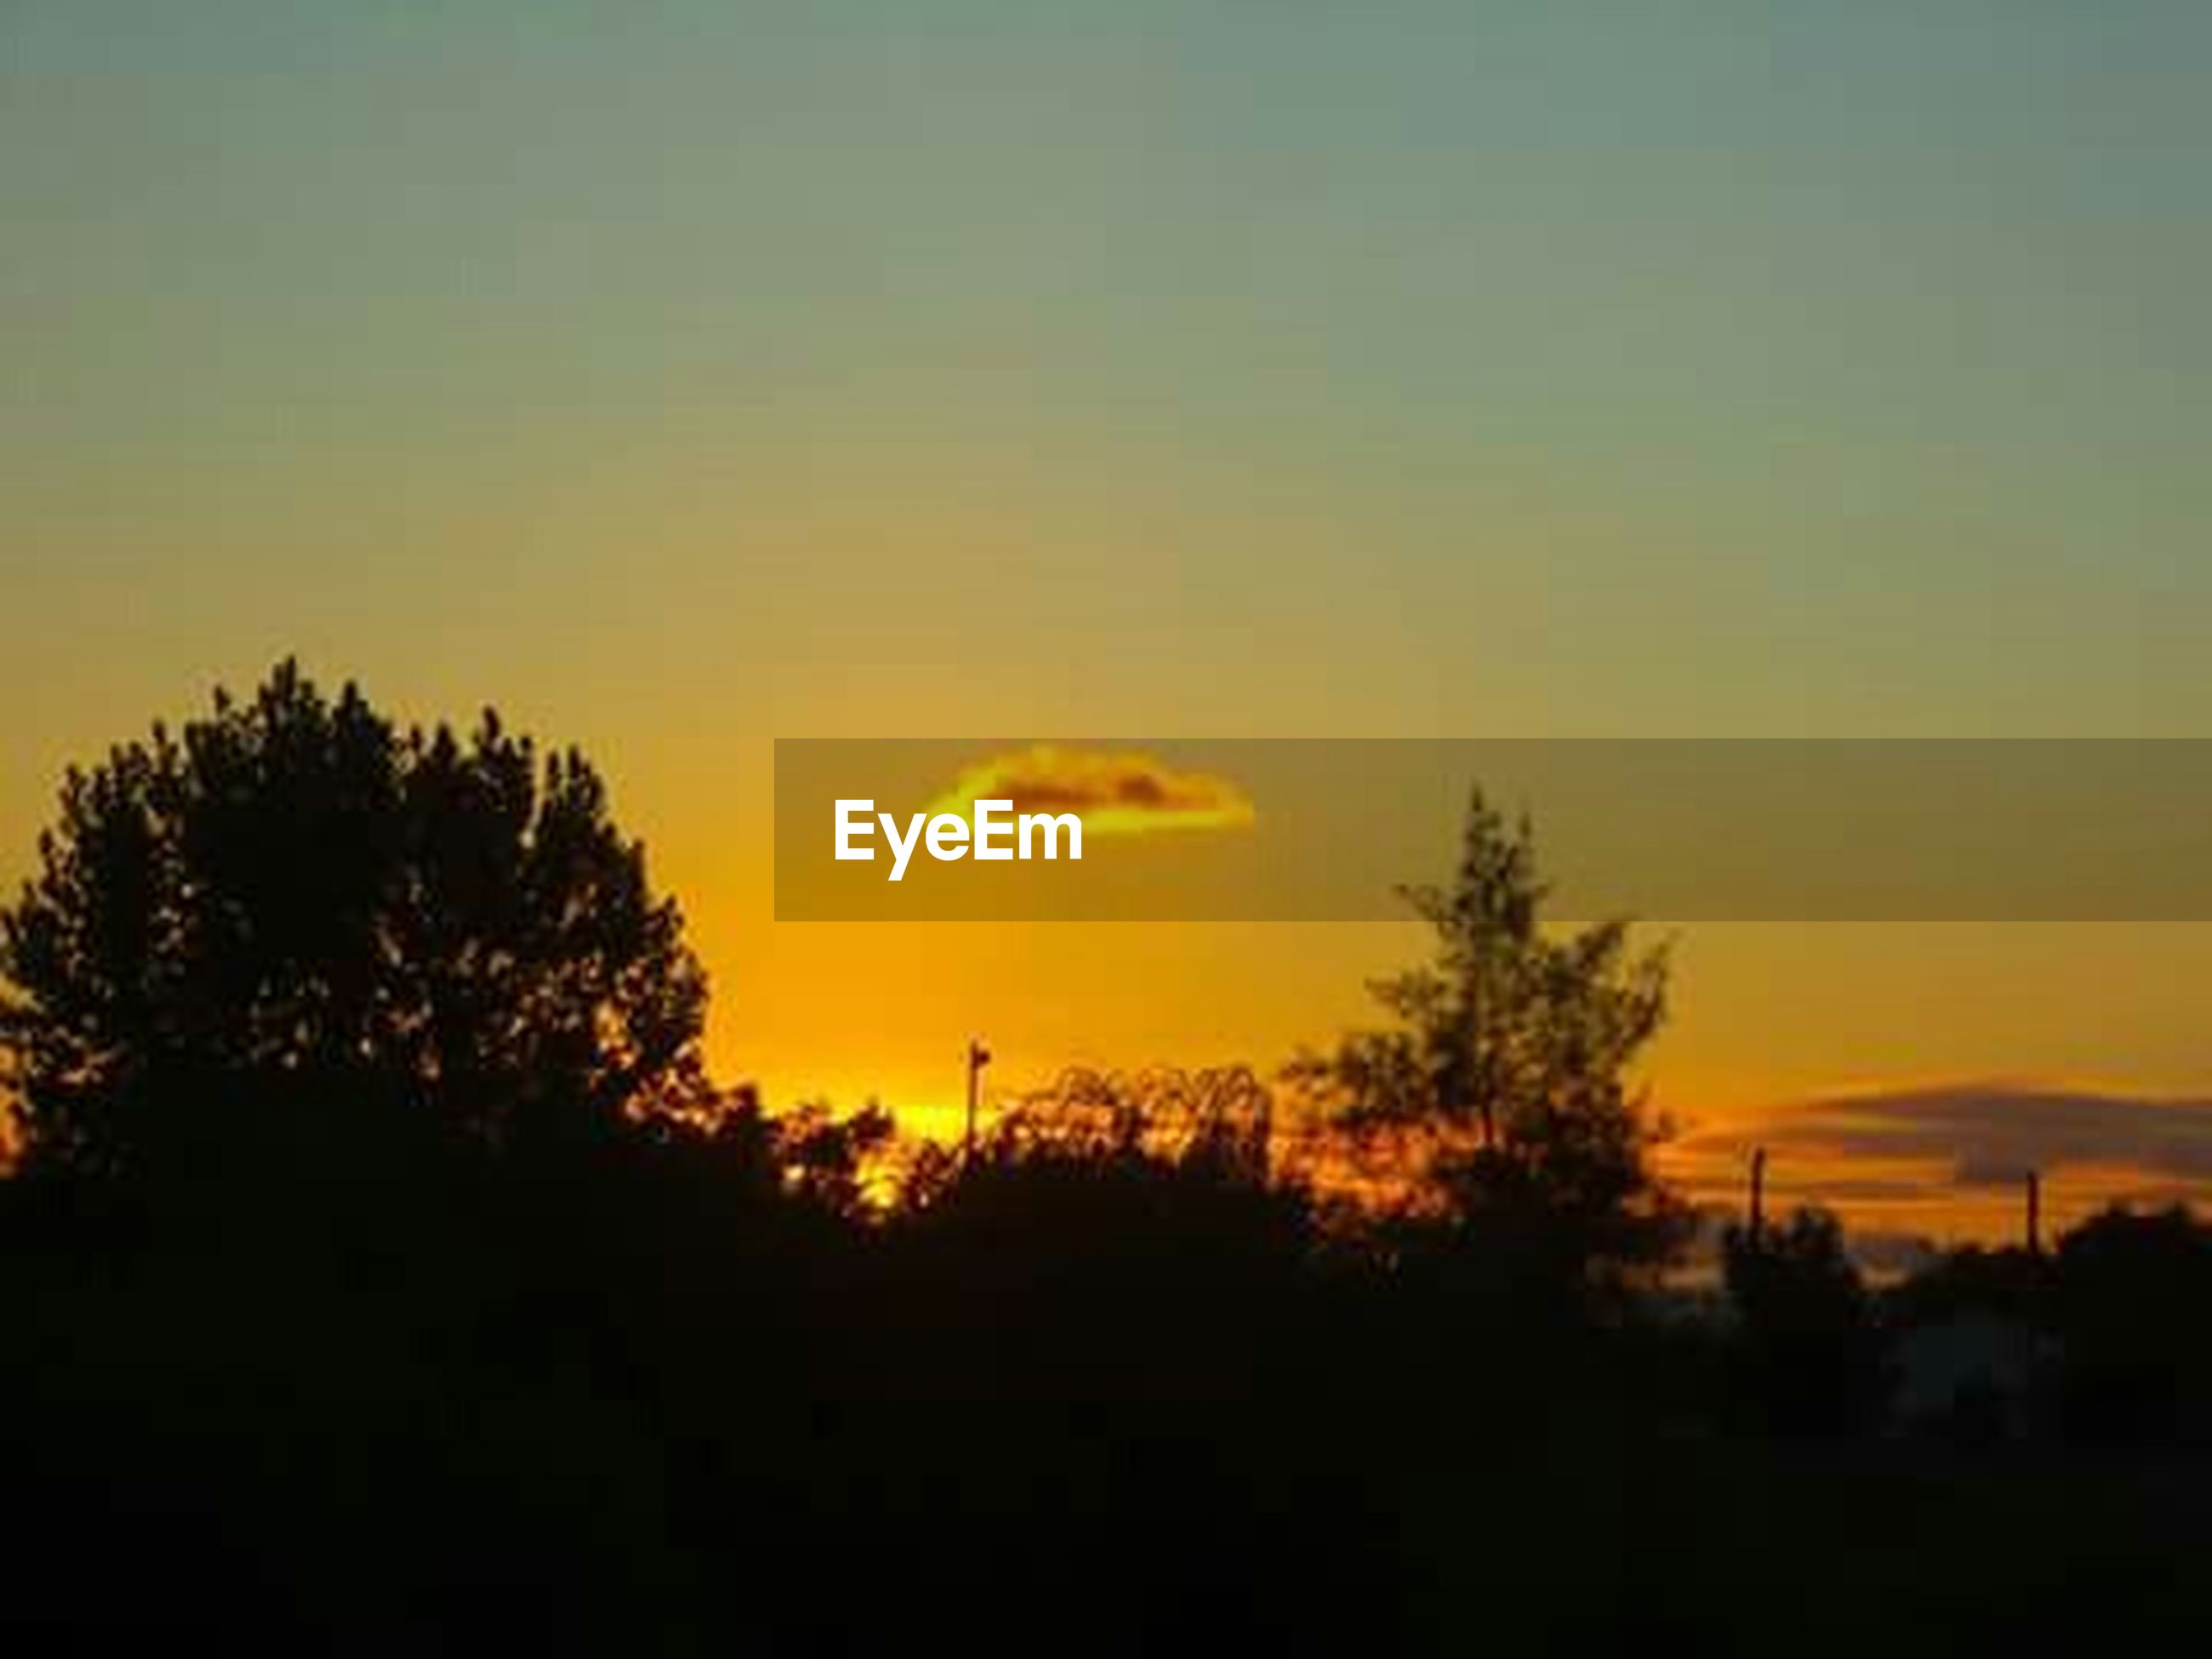 sunset, silhouette, tranquil scene, scenics, tranquility, orange color, beauty in nature, tree, sky, nature, landscape, copy space, idyllic, outdoors, no people, growth, dark, outline, non-urban scene, non urban scene